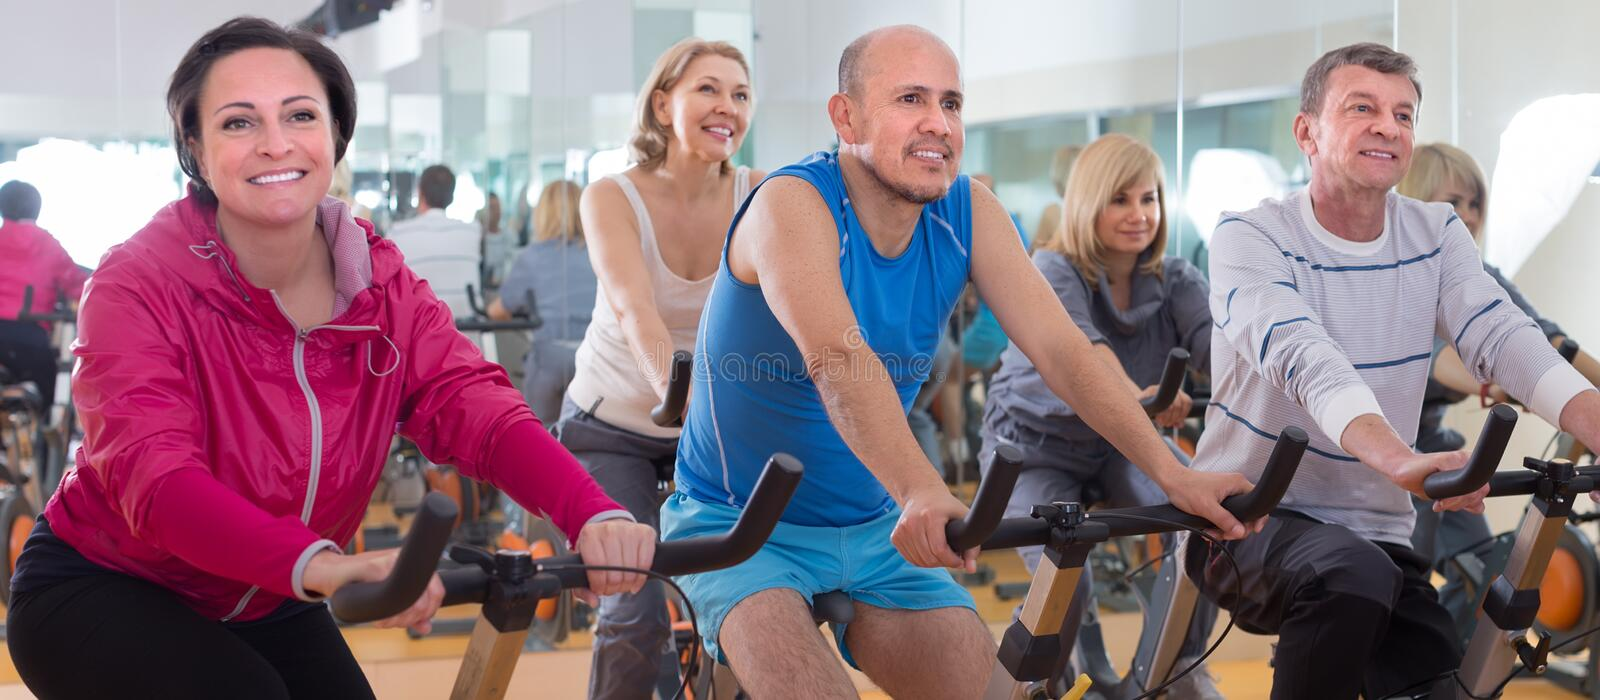 Older people do sports on exercise bikes royalty free stock images